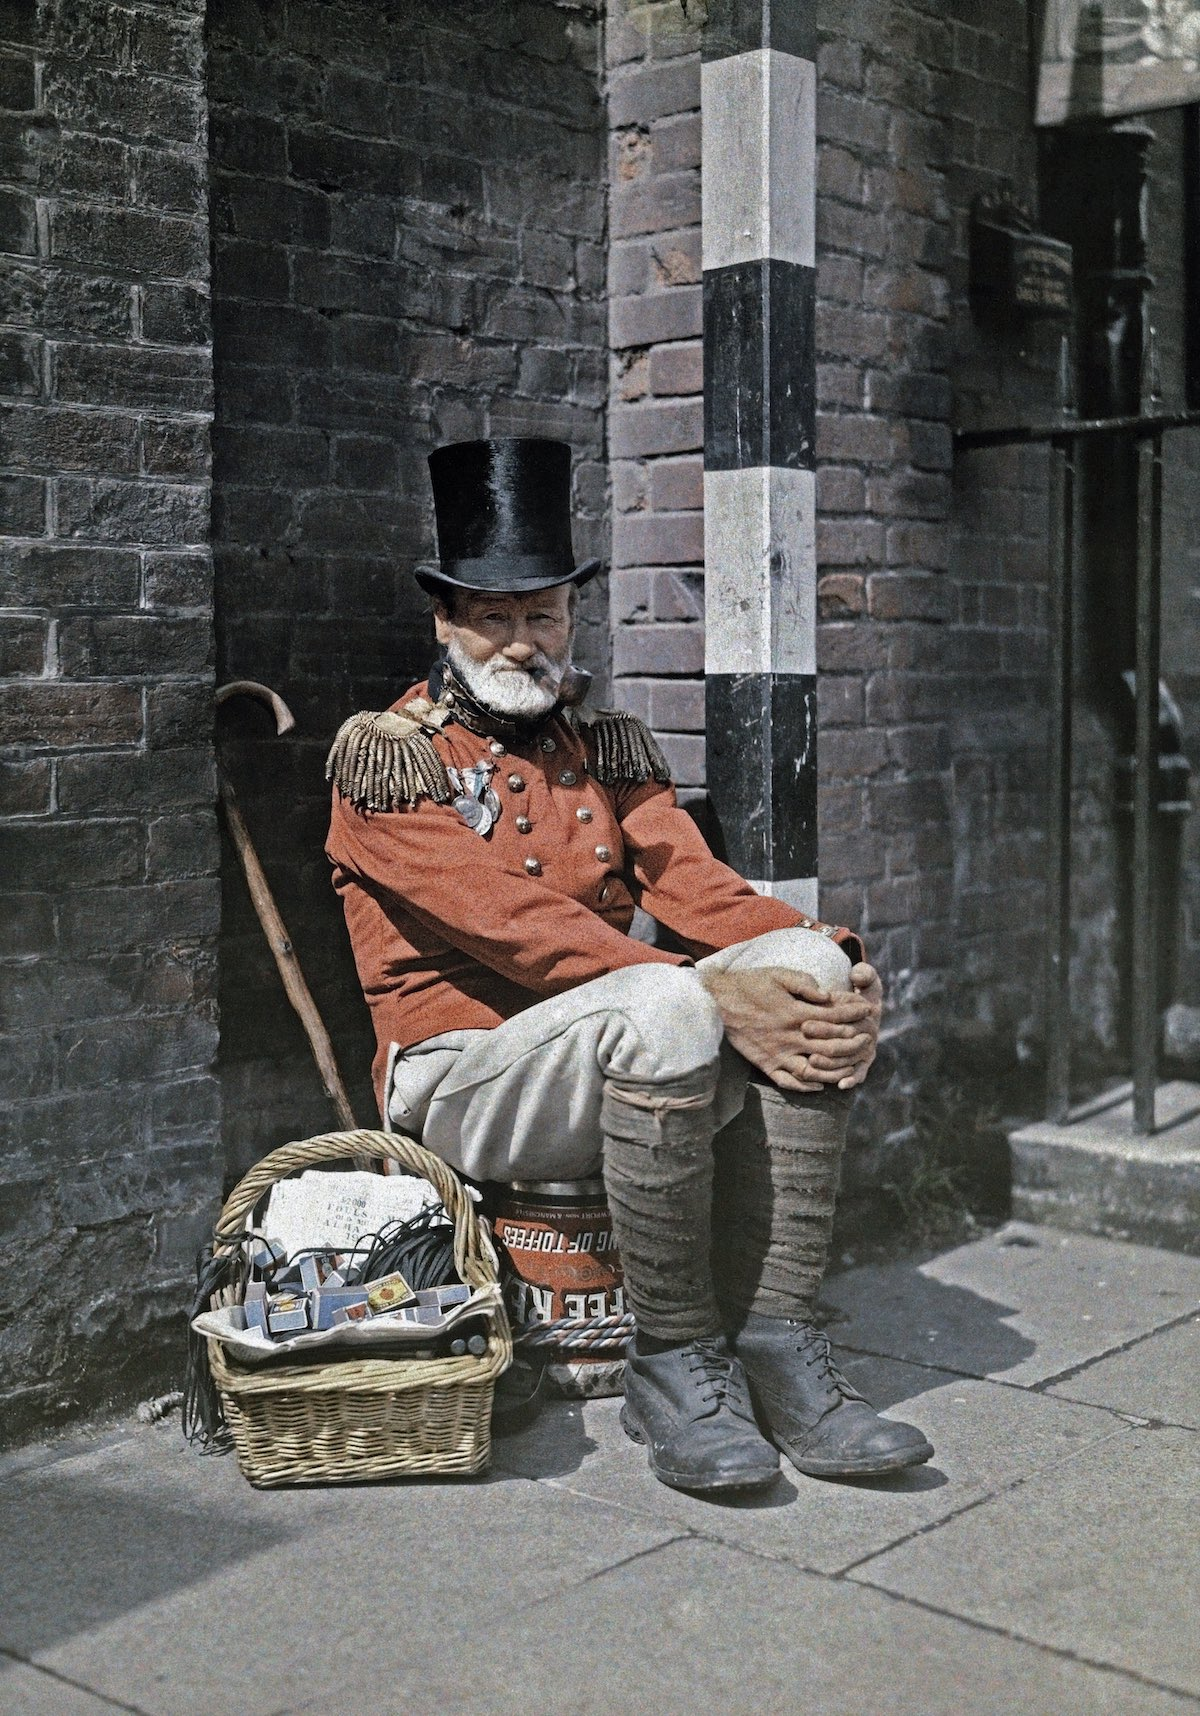 A war veteran sells matches on the street, in Canterbury, Kent. Image: Clifton R. Adams/National Geographic Creative/Corbis